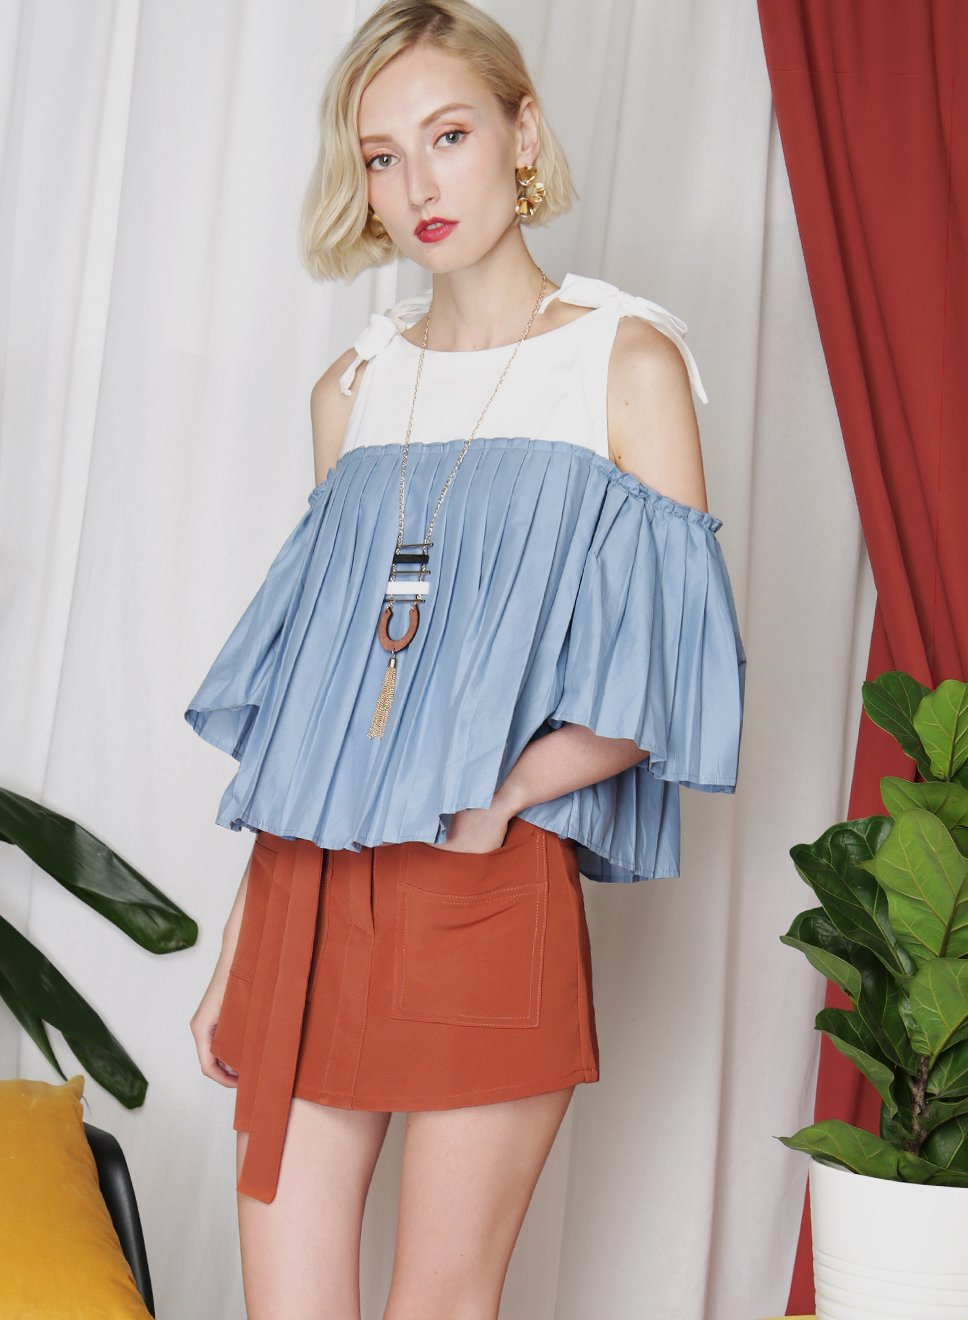 FRONTIER Pleated Contrast Top (Blue) at $34.50 only sold at And Well Dressed Online Fashion Store Singapore